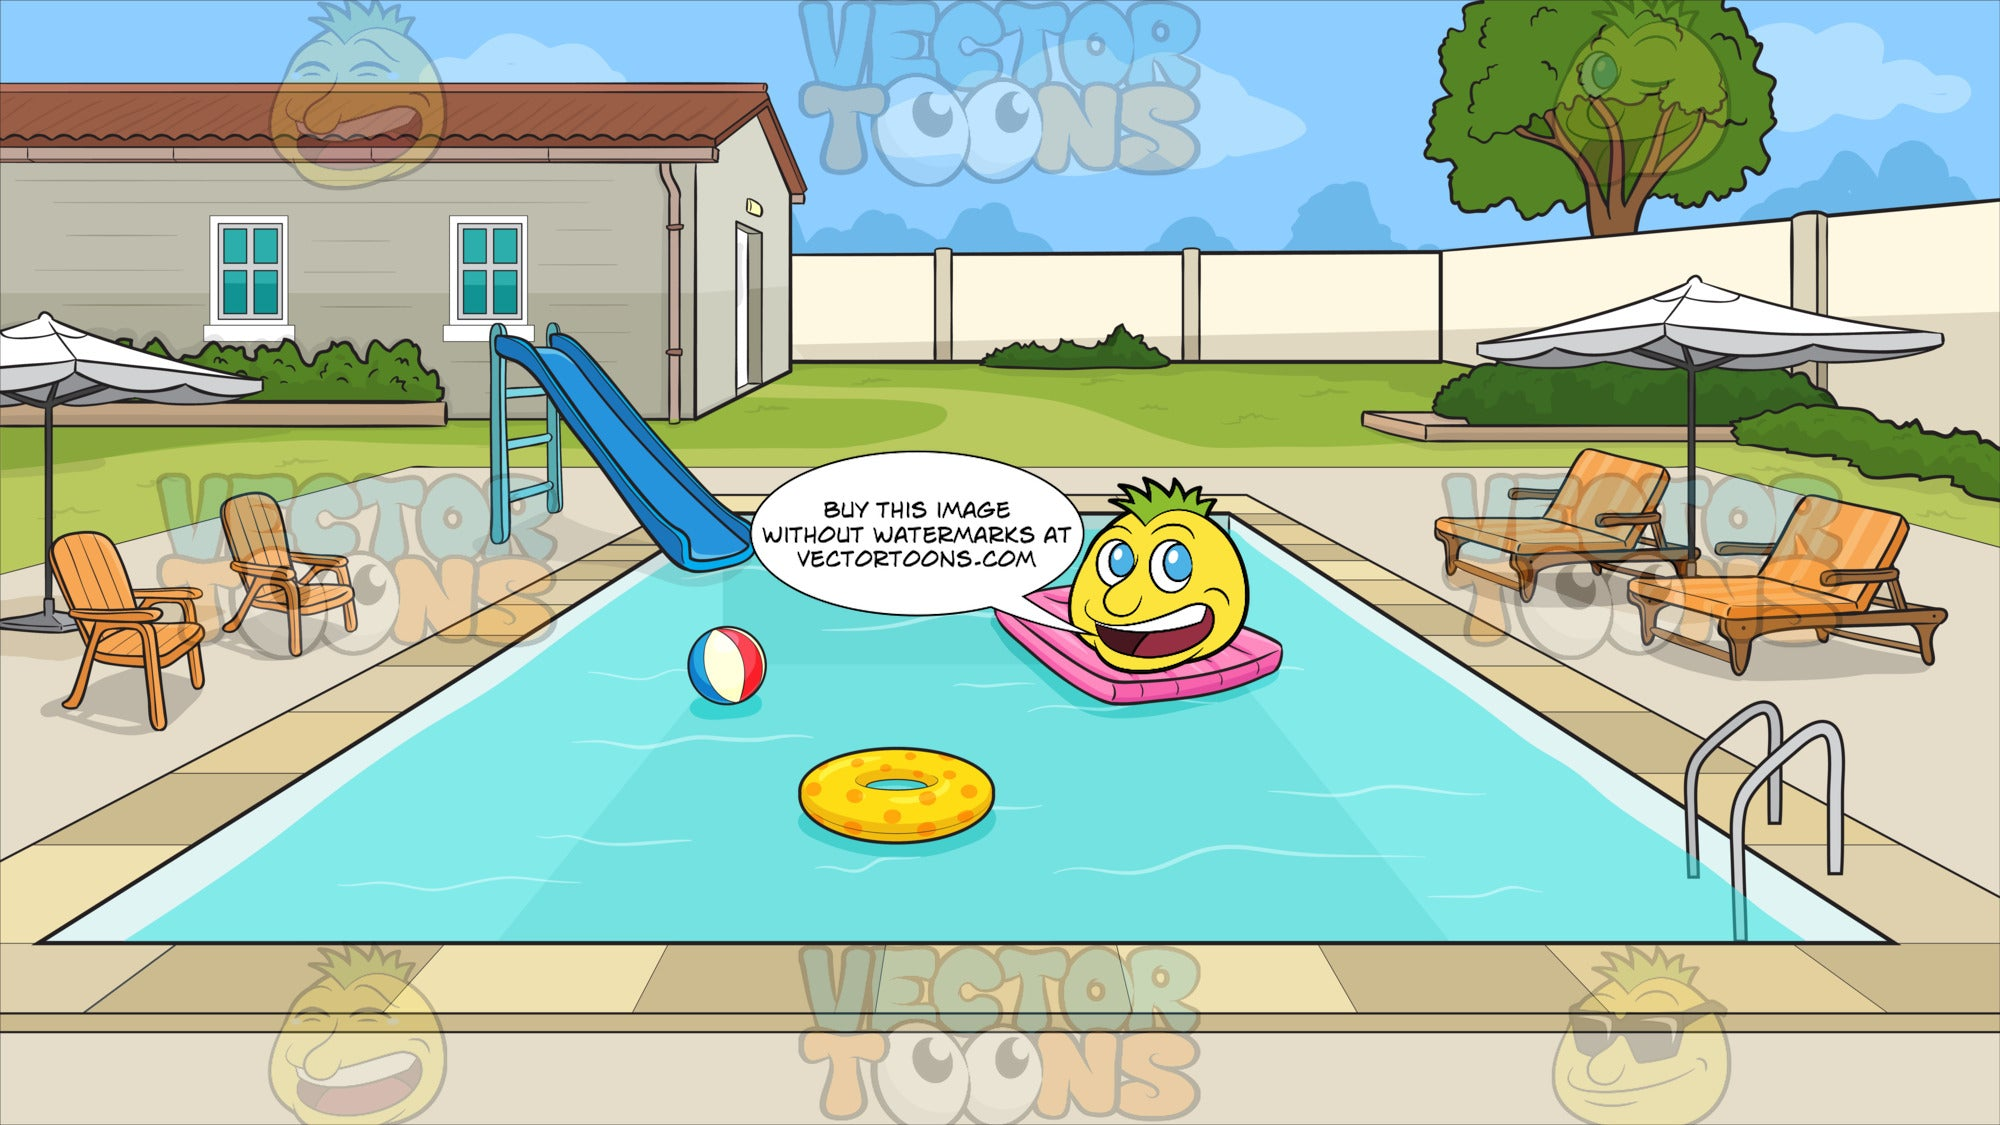 Private Backyard Swimming Pool Background. A rectangular swimming pool filled with aqua blue water, with floaters on it, as well as a blue slide, orange loungers, seats, white umbrellas beside it, at the back of a house with grayish beige walls, brown roofing, teal windows, in front of a grassy domestic property bordered by off white walls